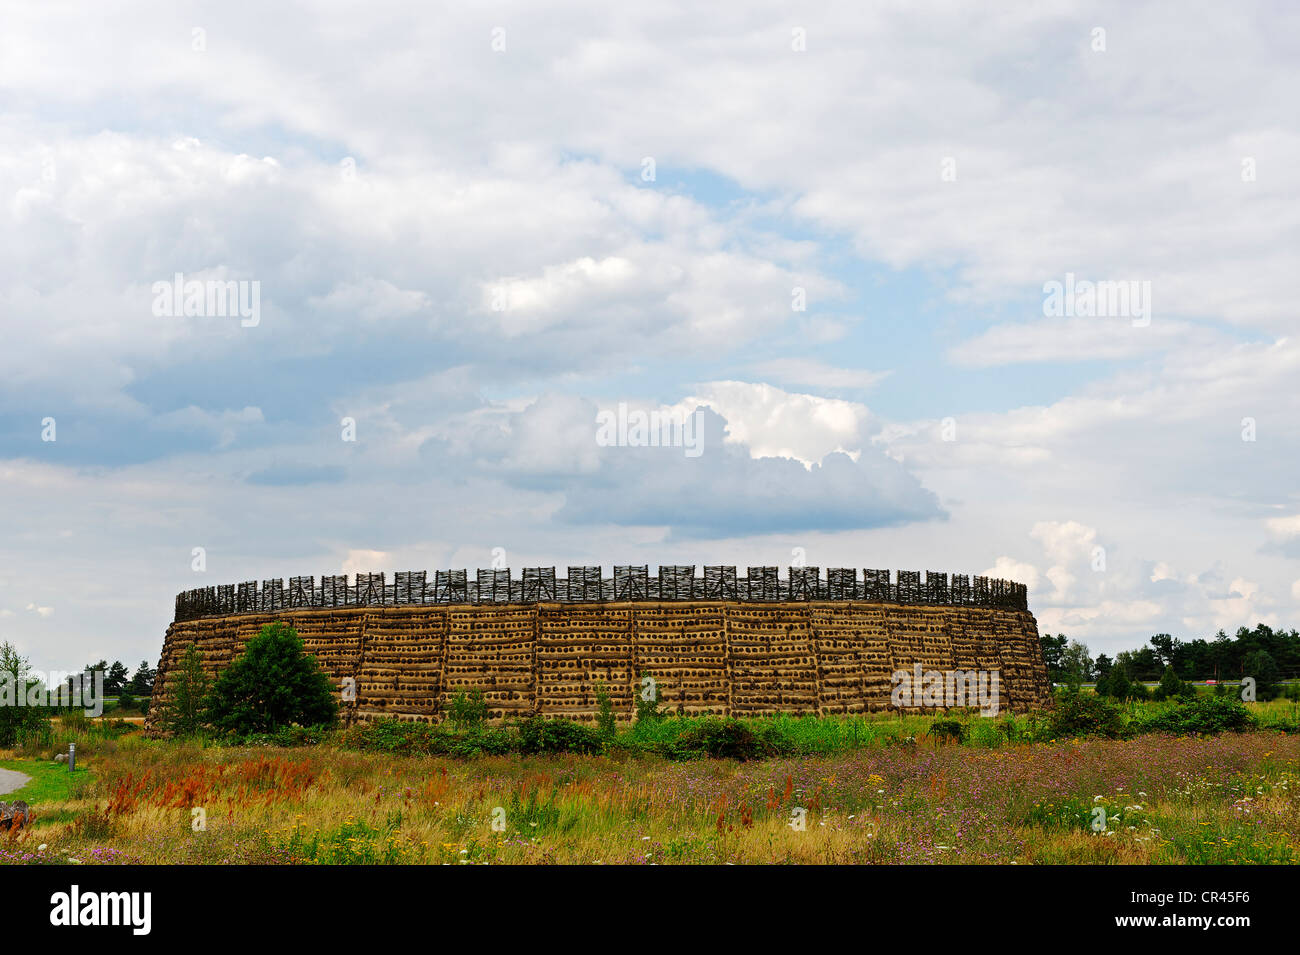 Slavic castle of Raddusch, Vetschau, Spreewald, Brandenburg, Germany, Europe Stock Photo